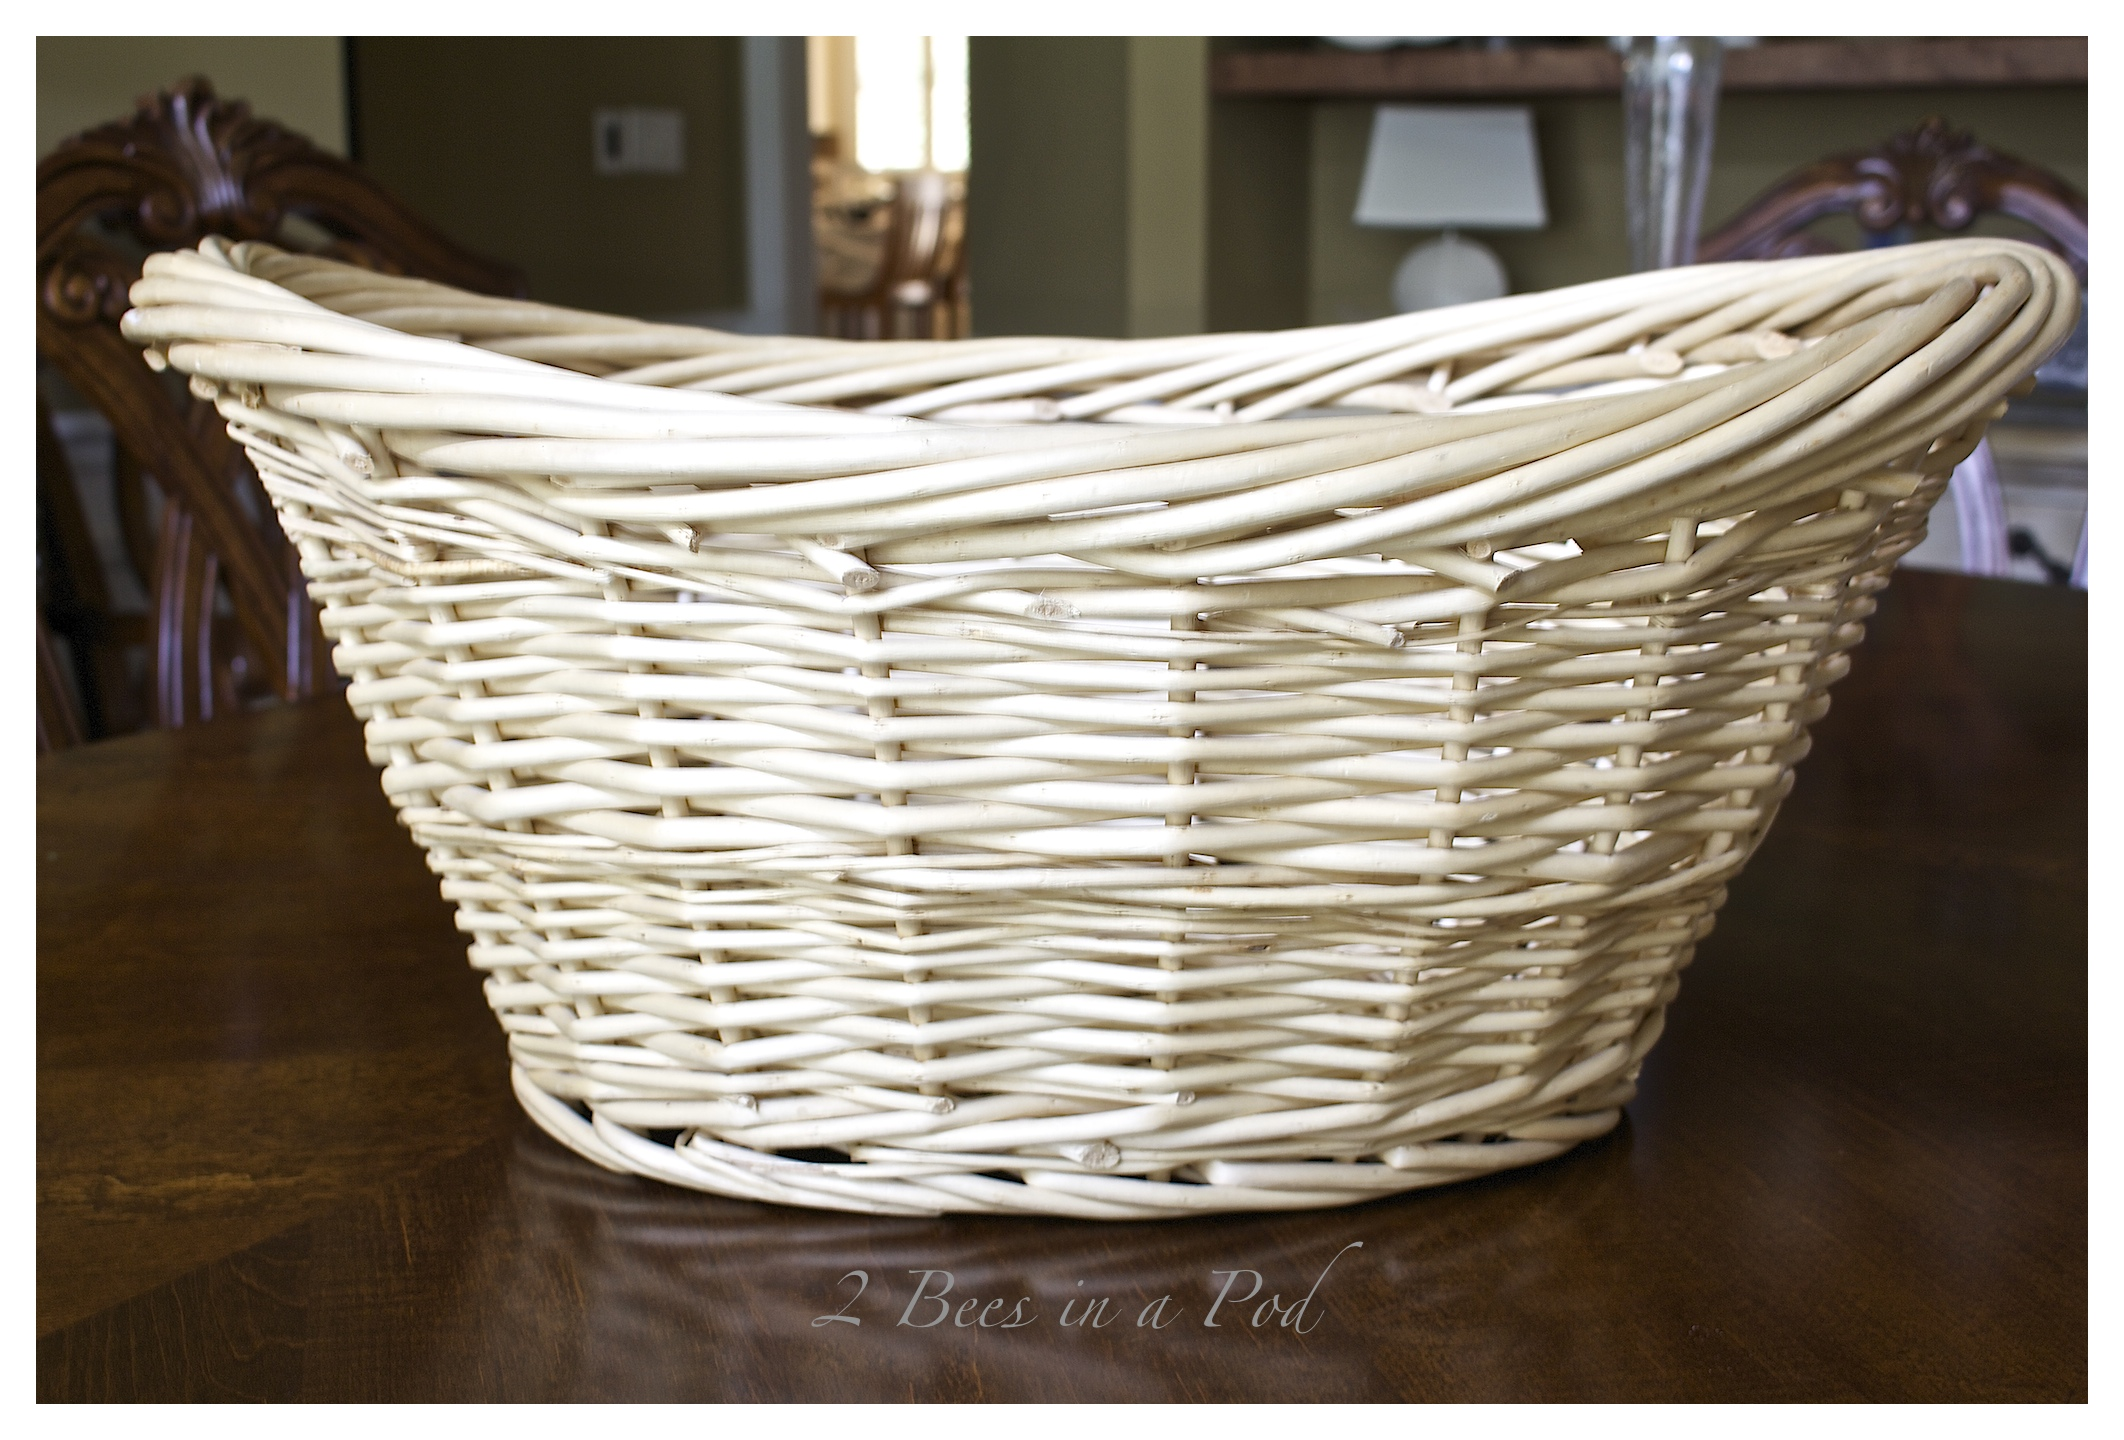 Wicker Laundry Baskets Diy Gray Washed Wicker Laundry Basket 2 Bees In A Pod